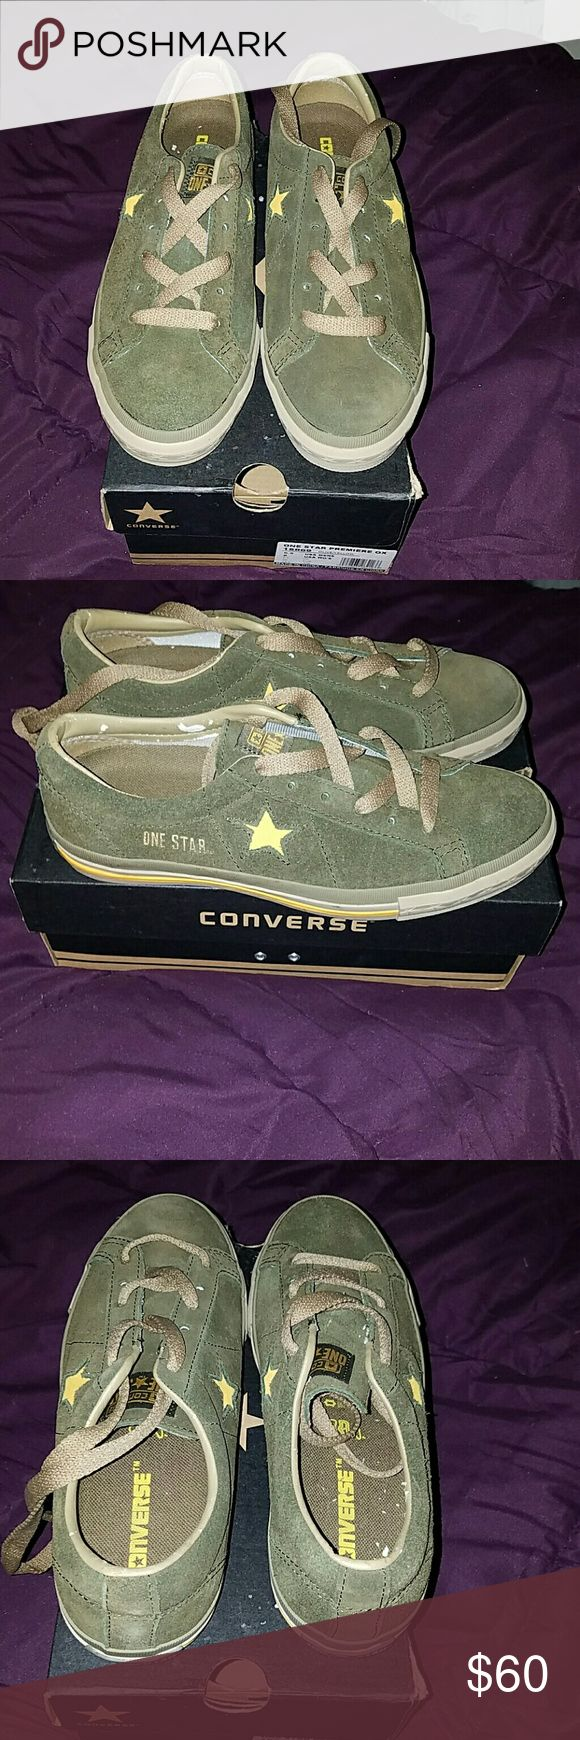 Converse One Star Premium OX BRAND-NEW 2 toned suede never worn not even laced up there is some damage to the leather on the inside of the shoe shown in photos Converse All Star Shoes Sneakers